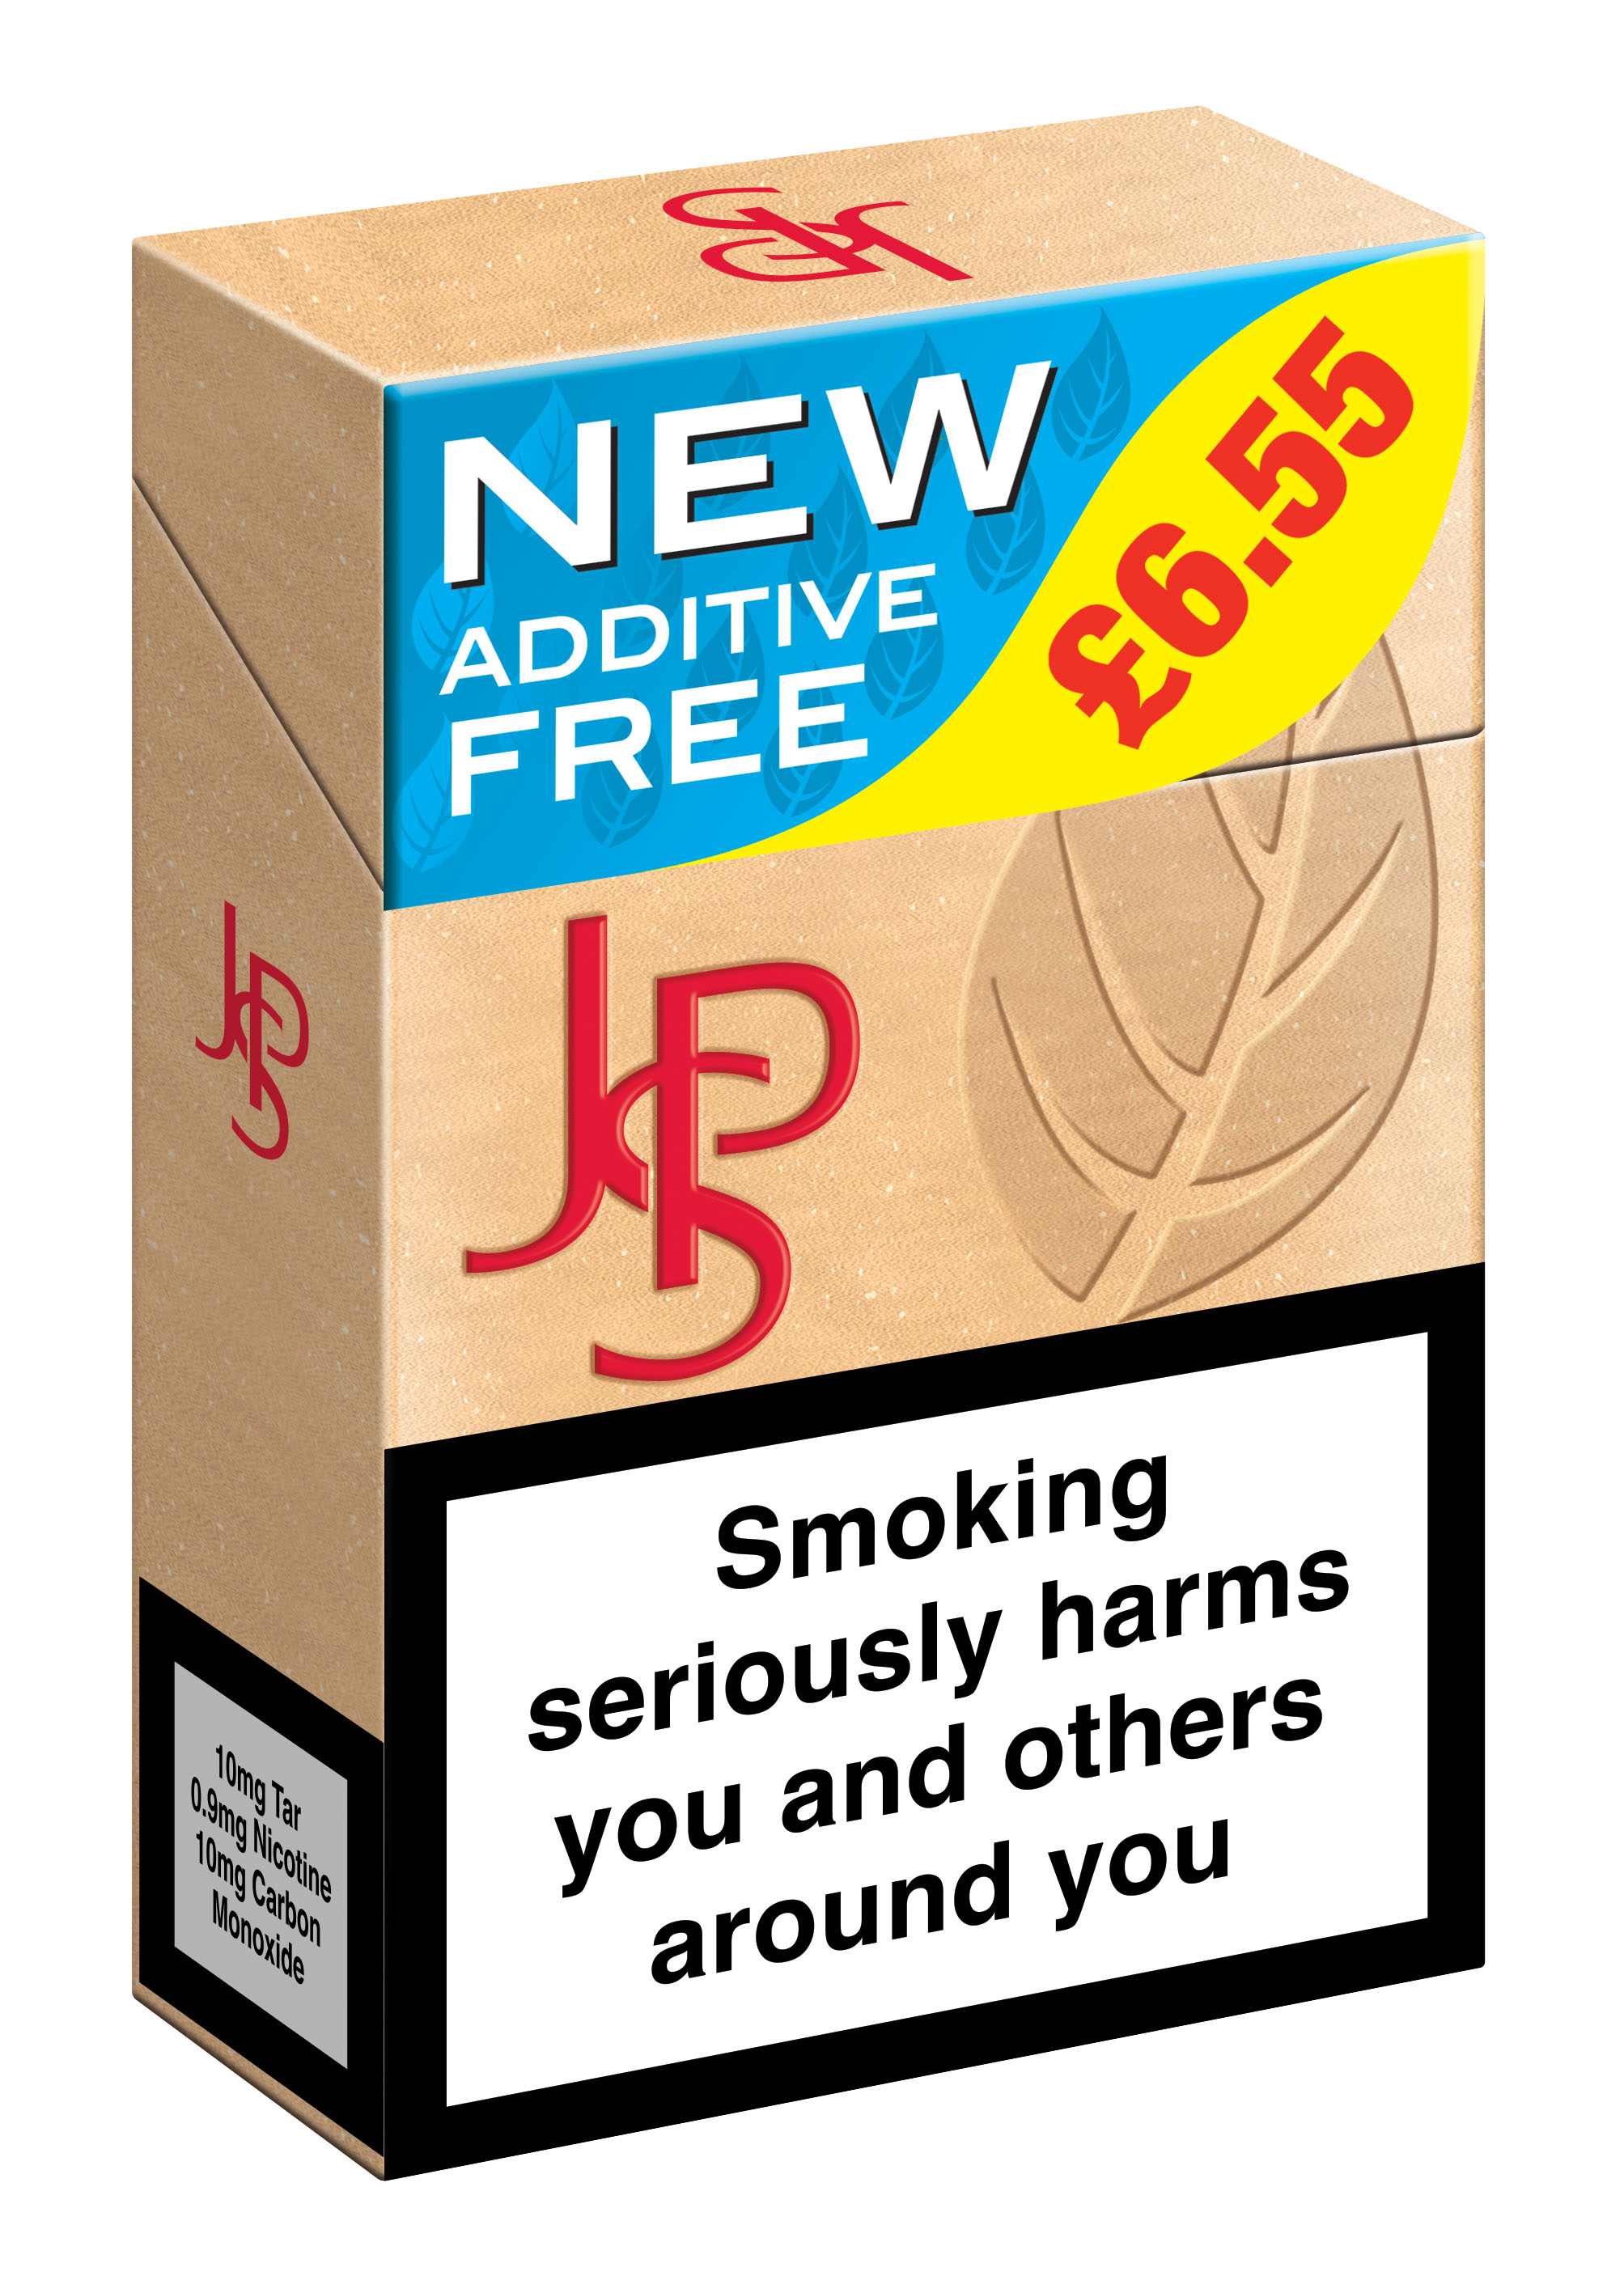 Imperial Tobacco launches JPS Just Additive Free cigarettes